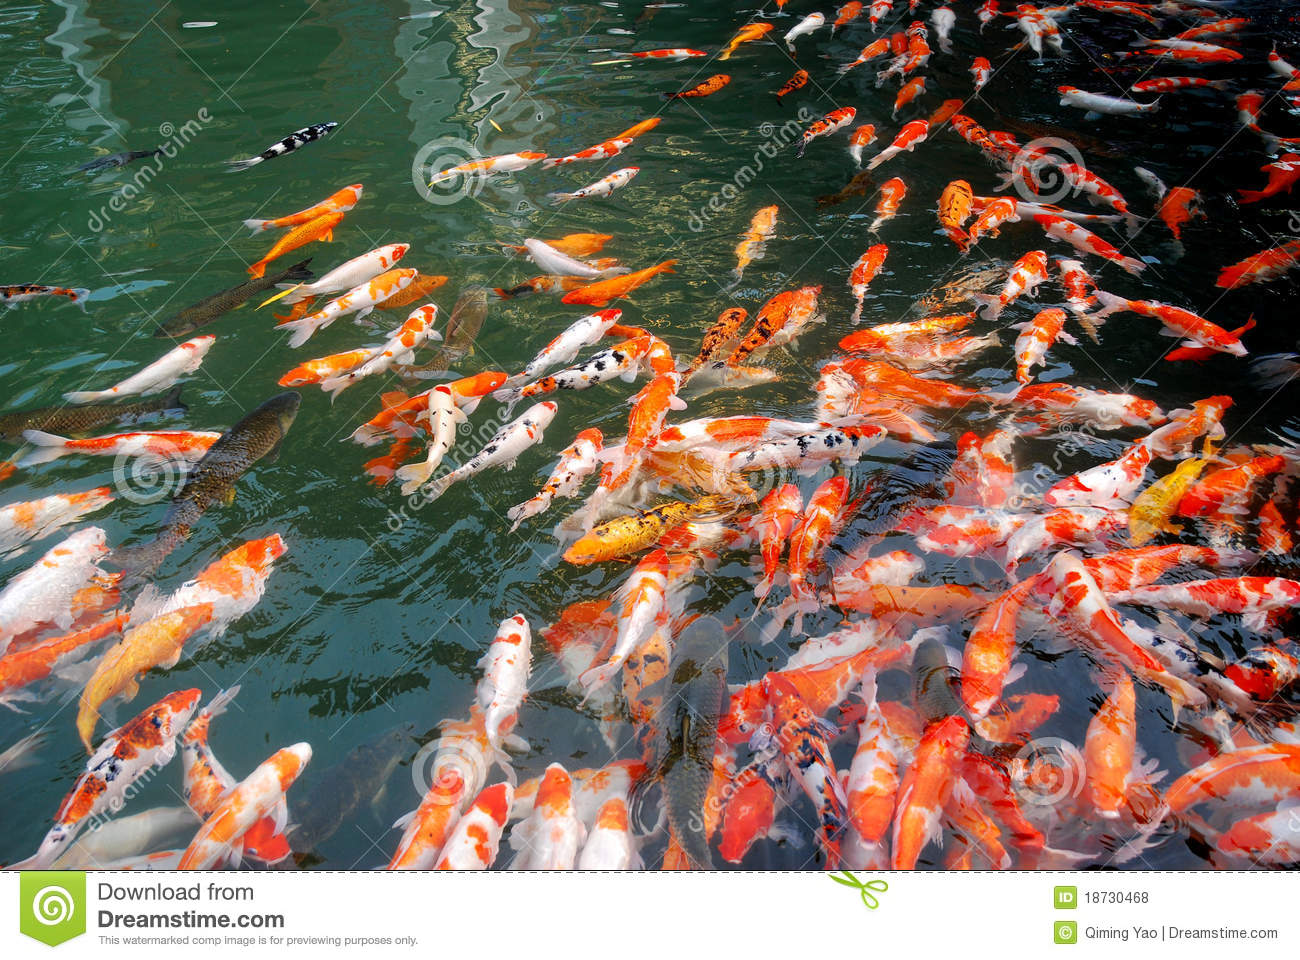 Koi in the lake royalty free stock photos image 18730468 for Larry king fish oil